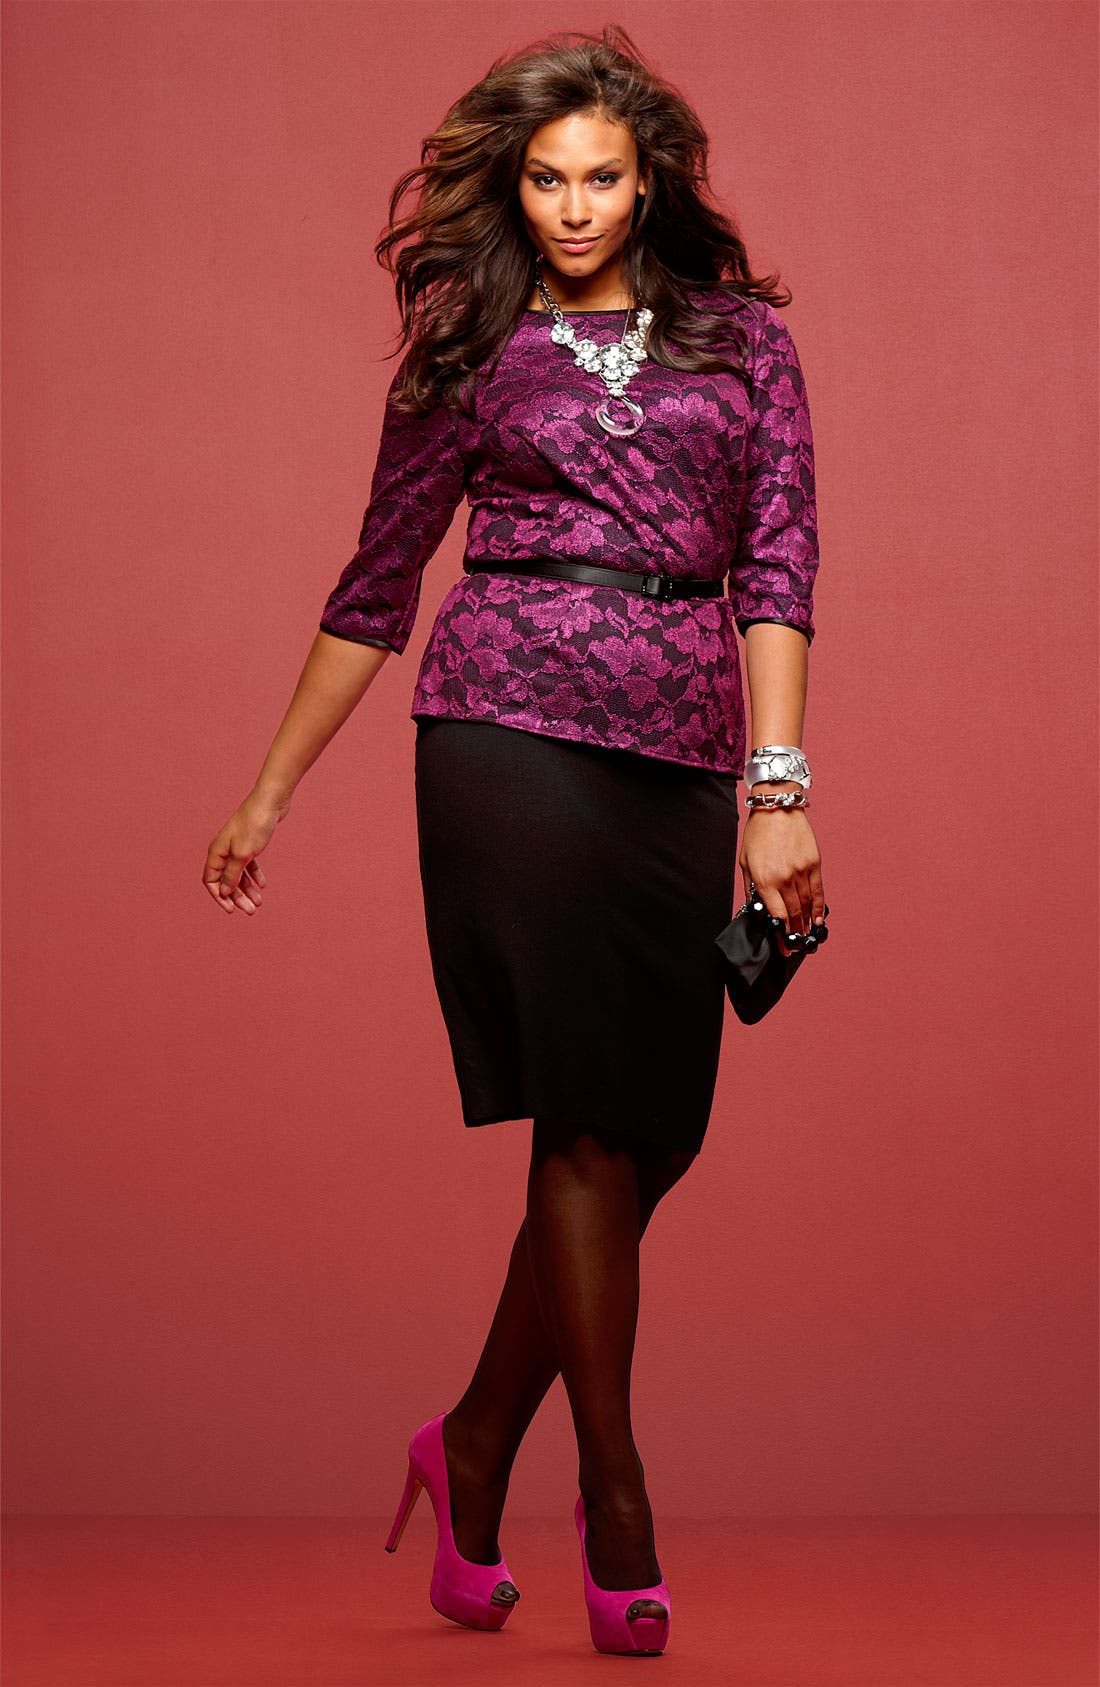 Main Image - Alex Evenings Lace Top & Vince Camuto Skirt